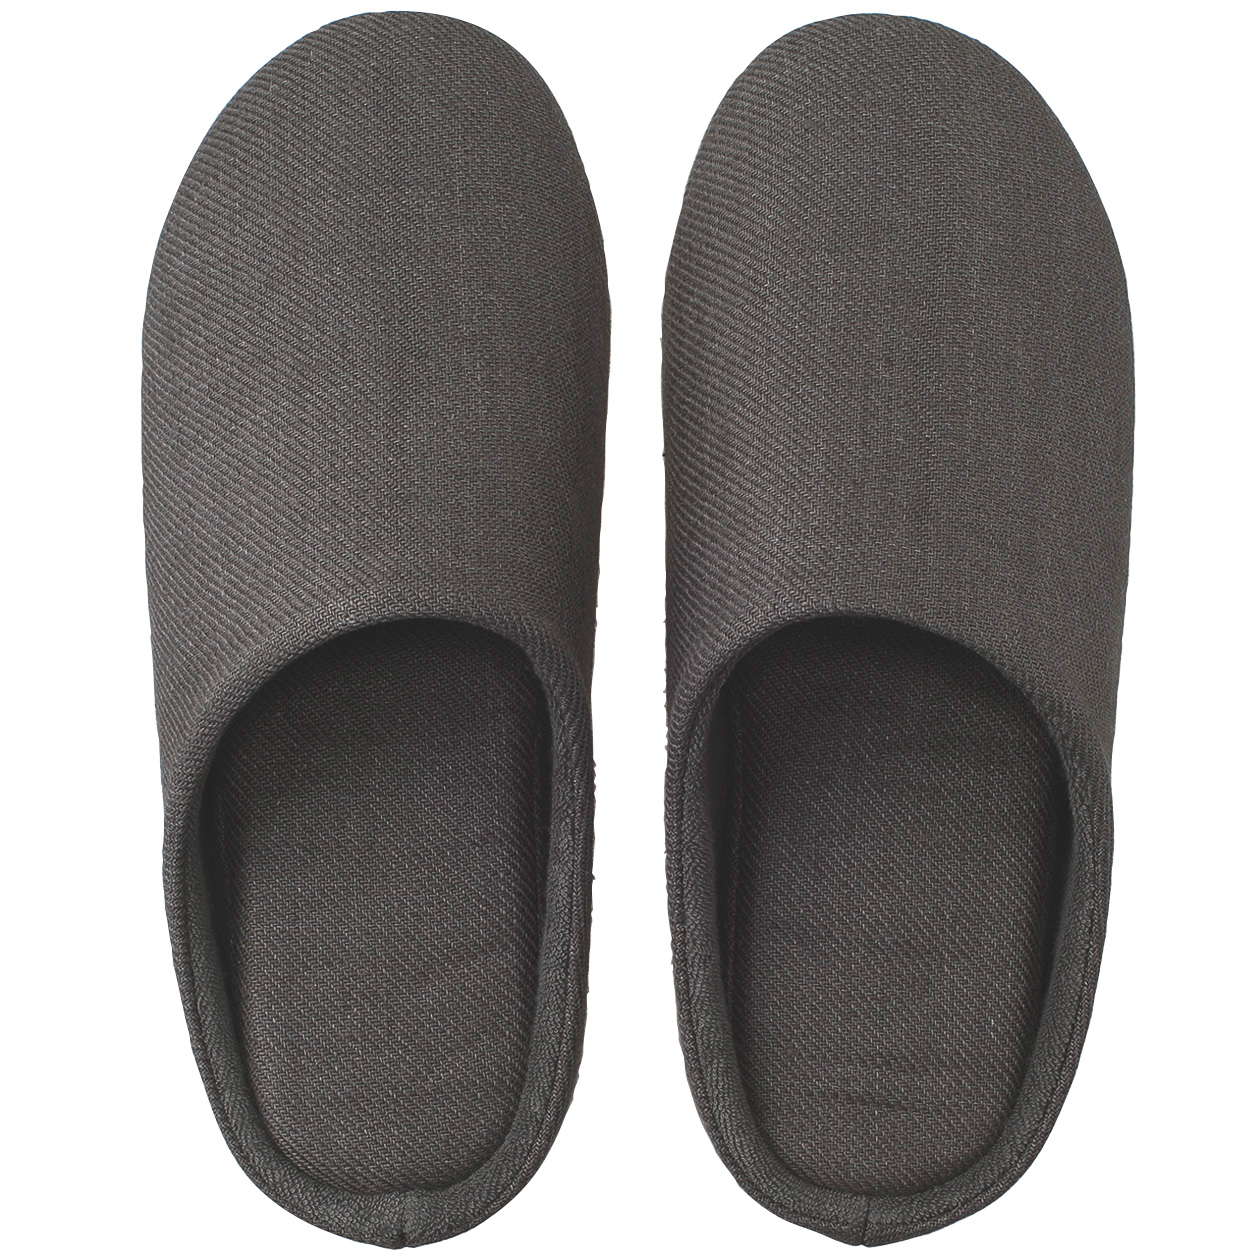 Linen Twill Cushion Slipper S Dark Gray S22 23 5cm Muji